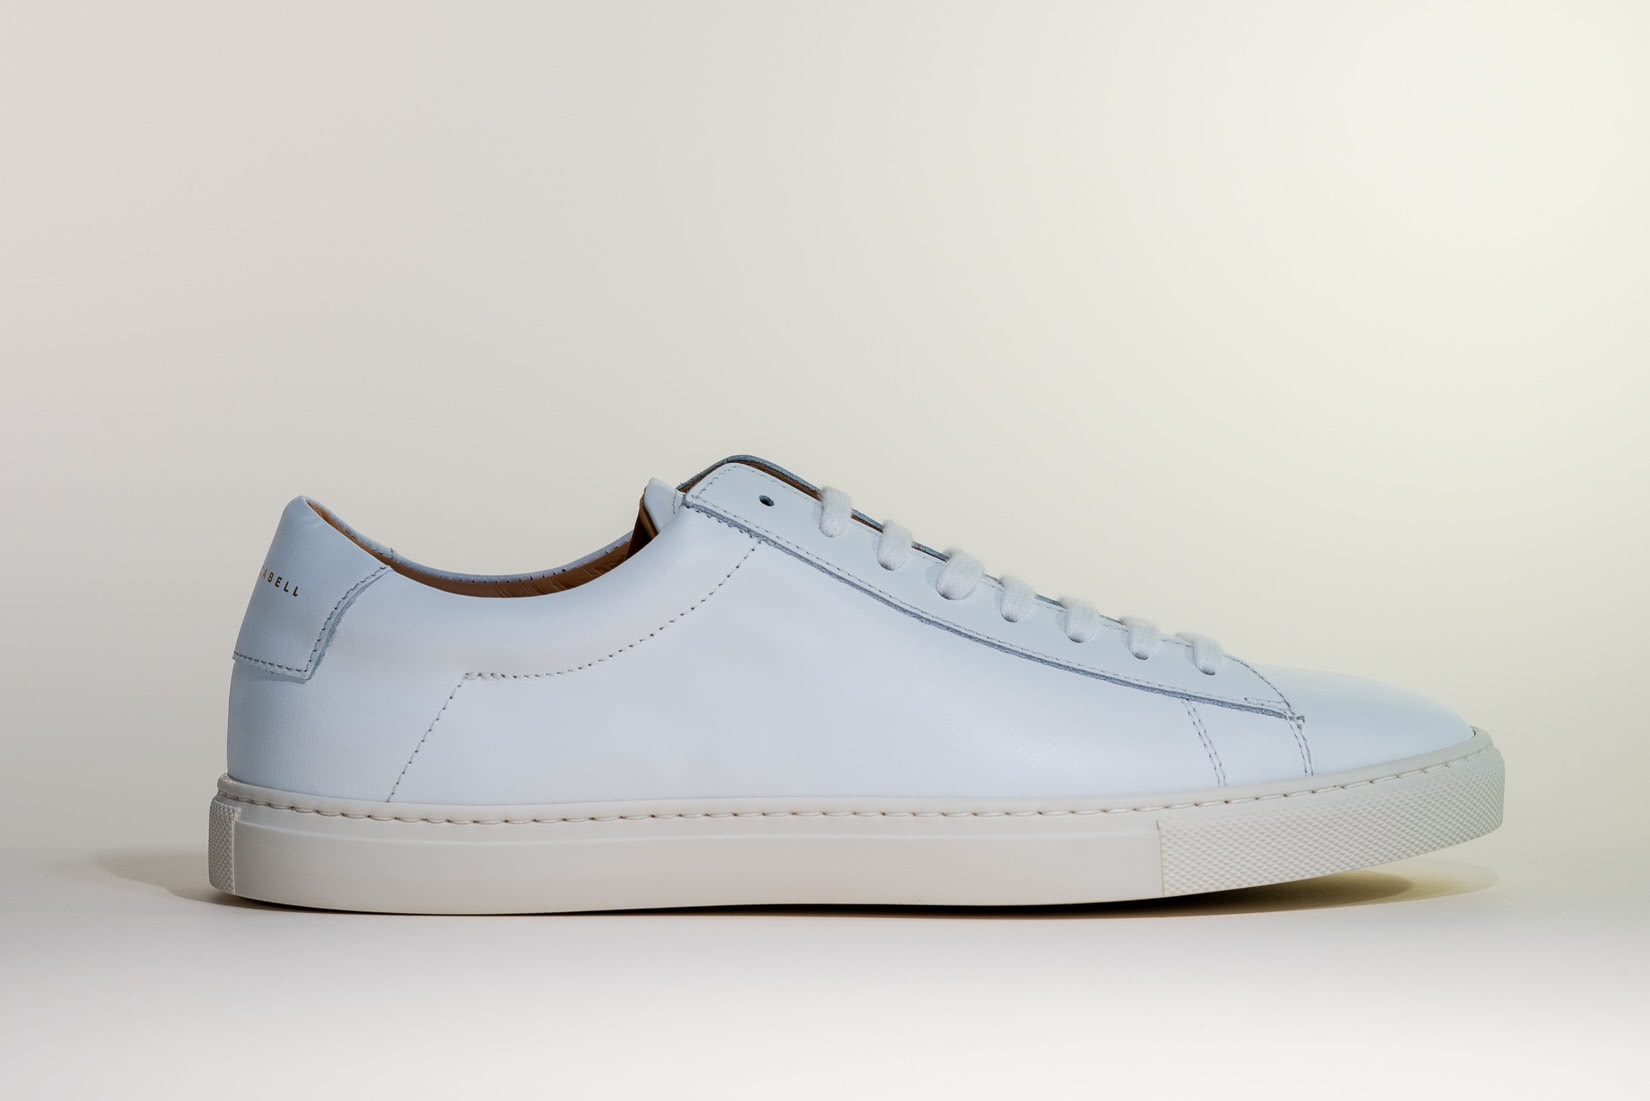 oliver cabell review low 1 sneakers side flat - Luxe Digital